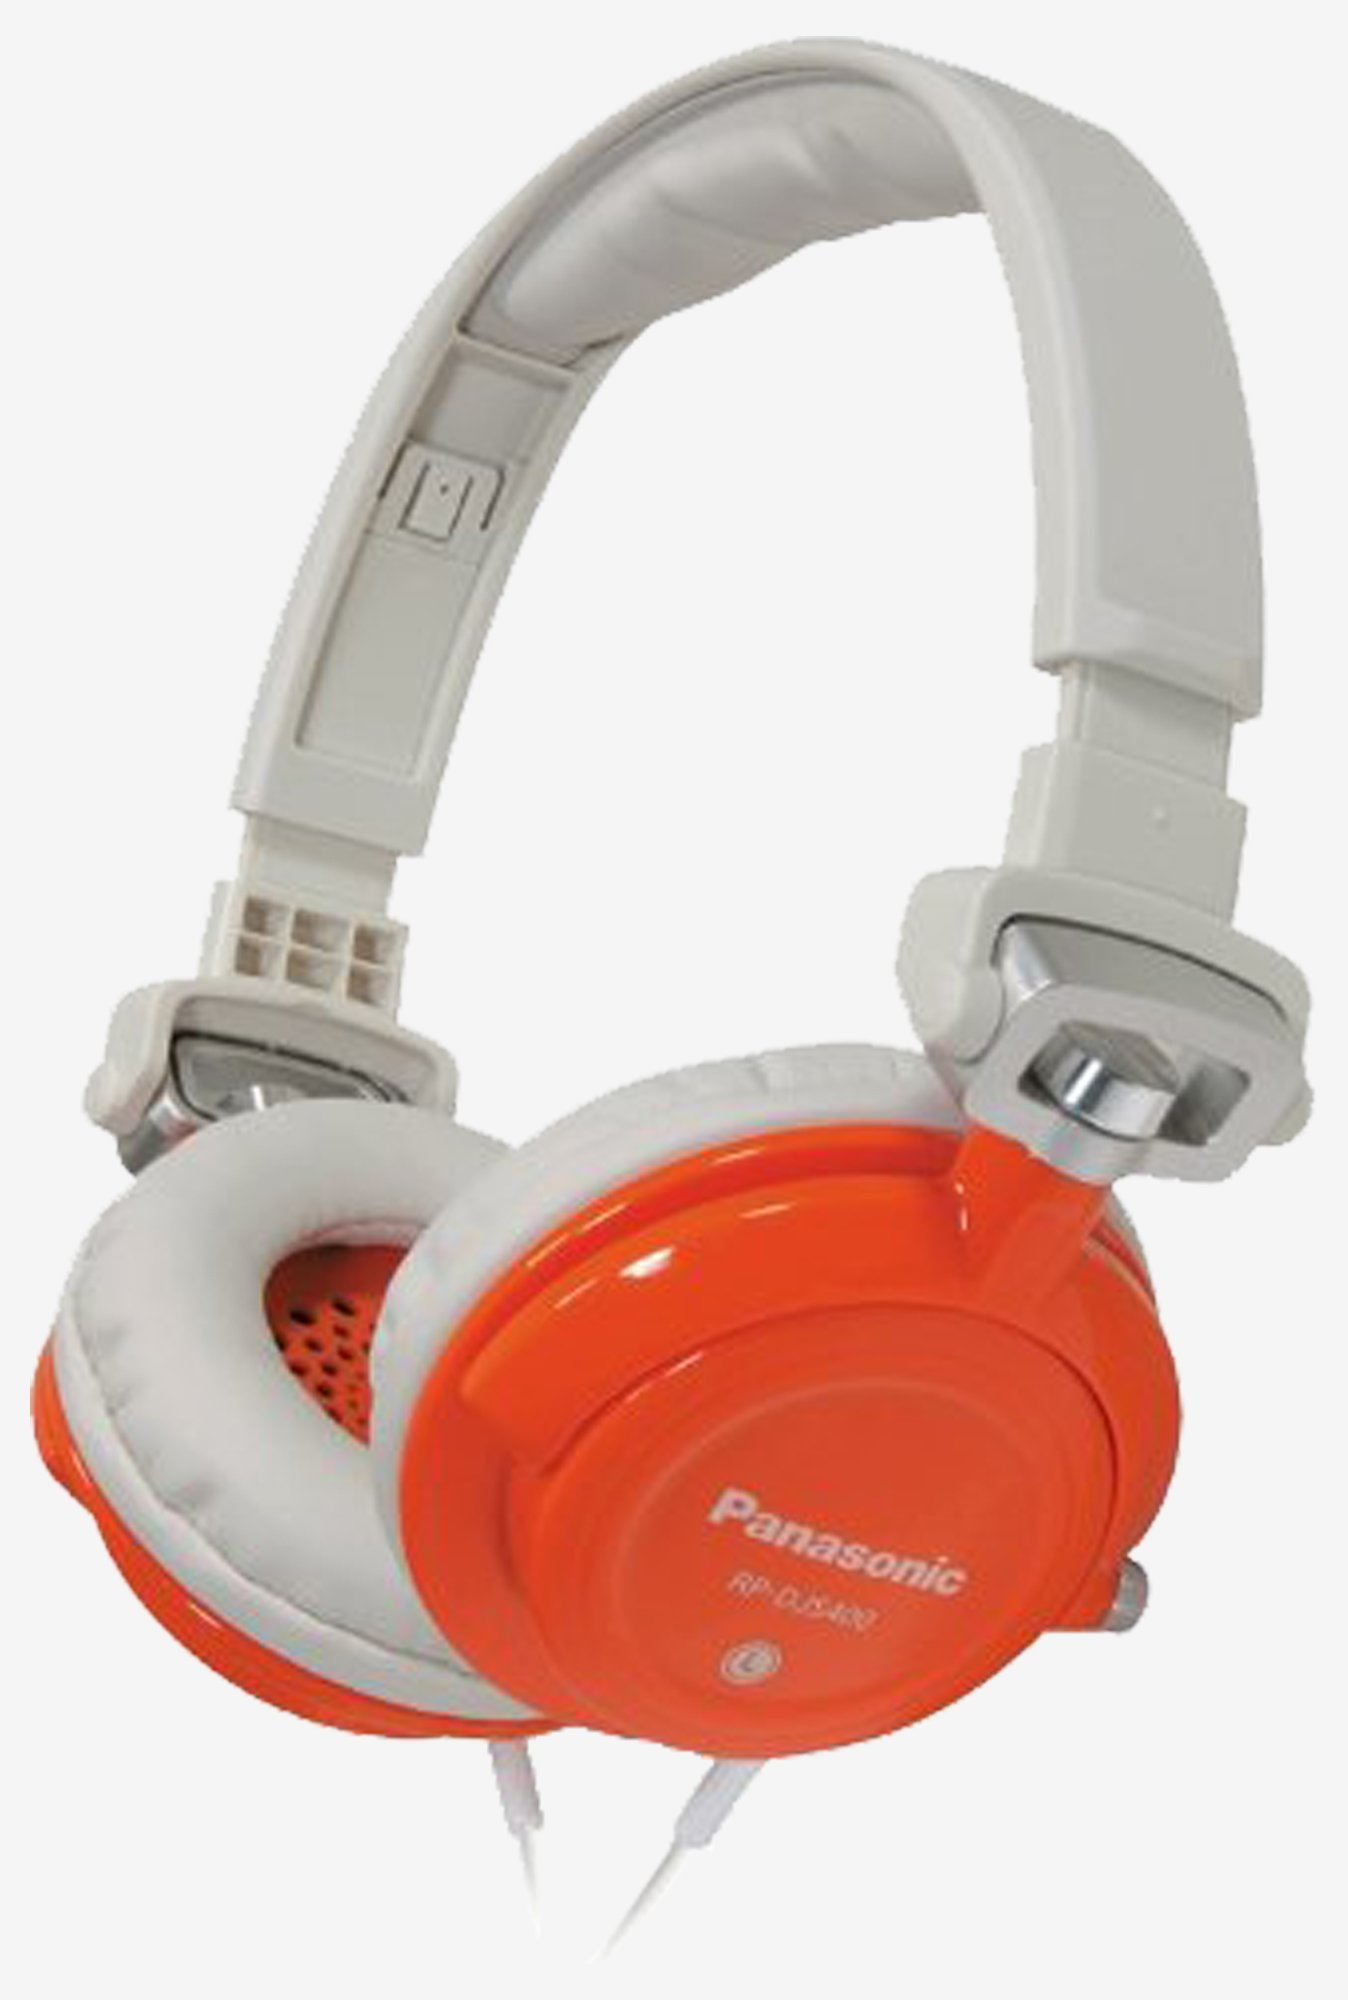 Panasonic RPDJS400D DJ Street Model Headphones (Orange)